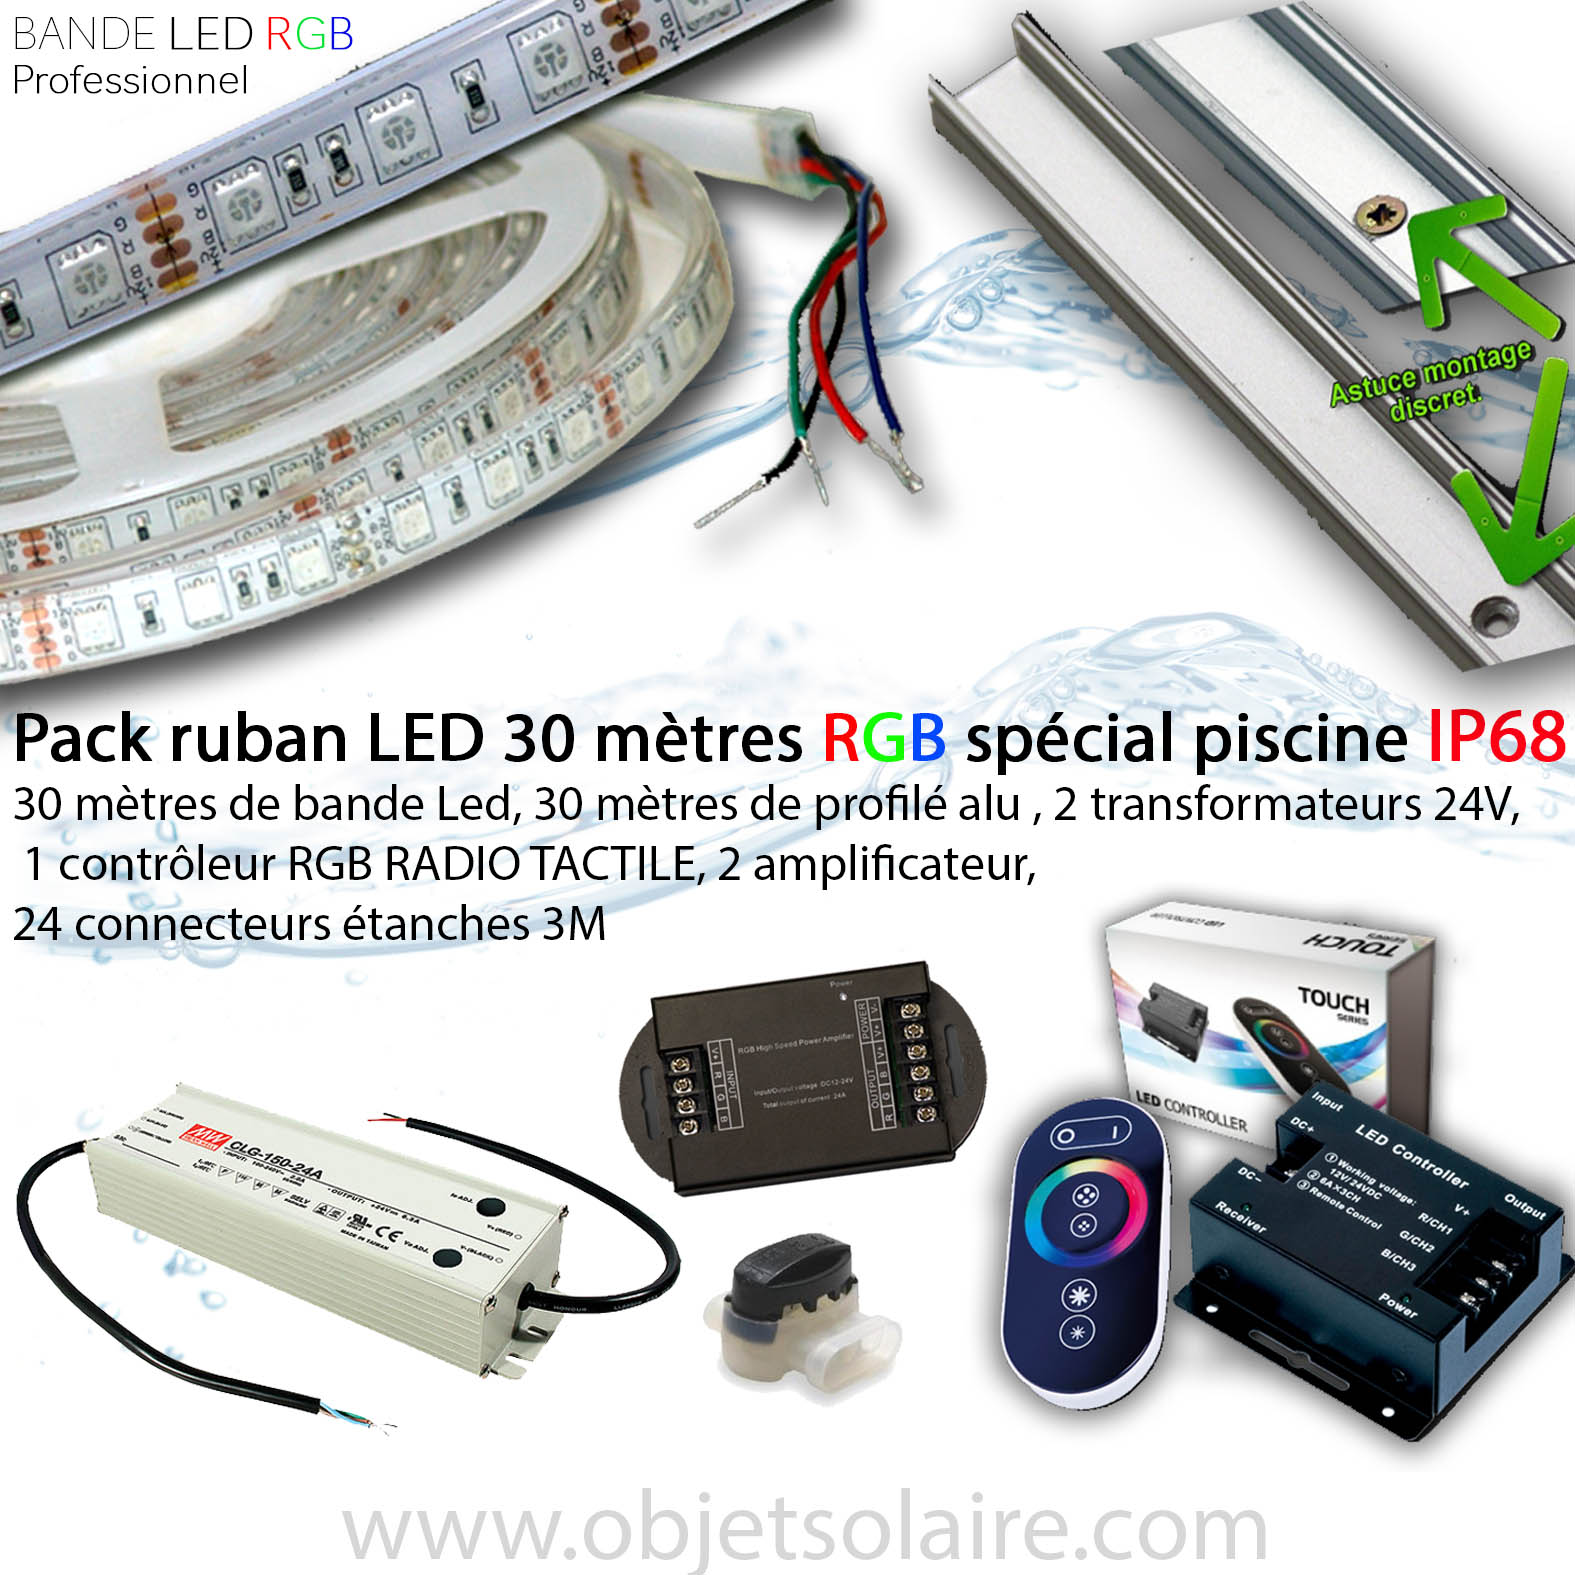 Ruban Led Eclairage Kit Ruban Led 30 Mètres Piscine Rgb Ip68 Eclairage Led